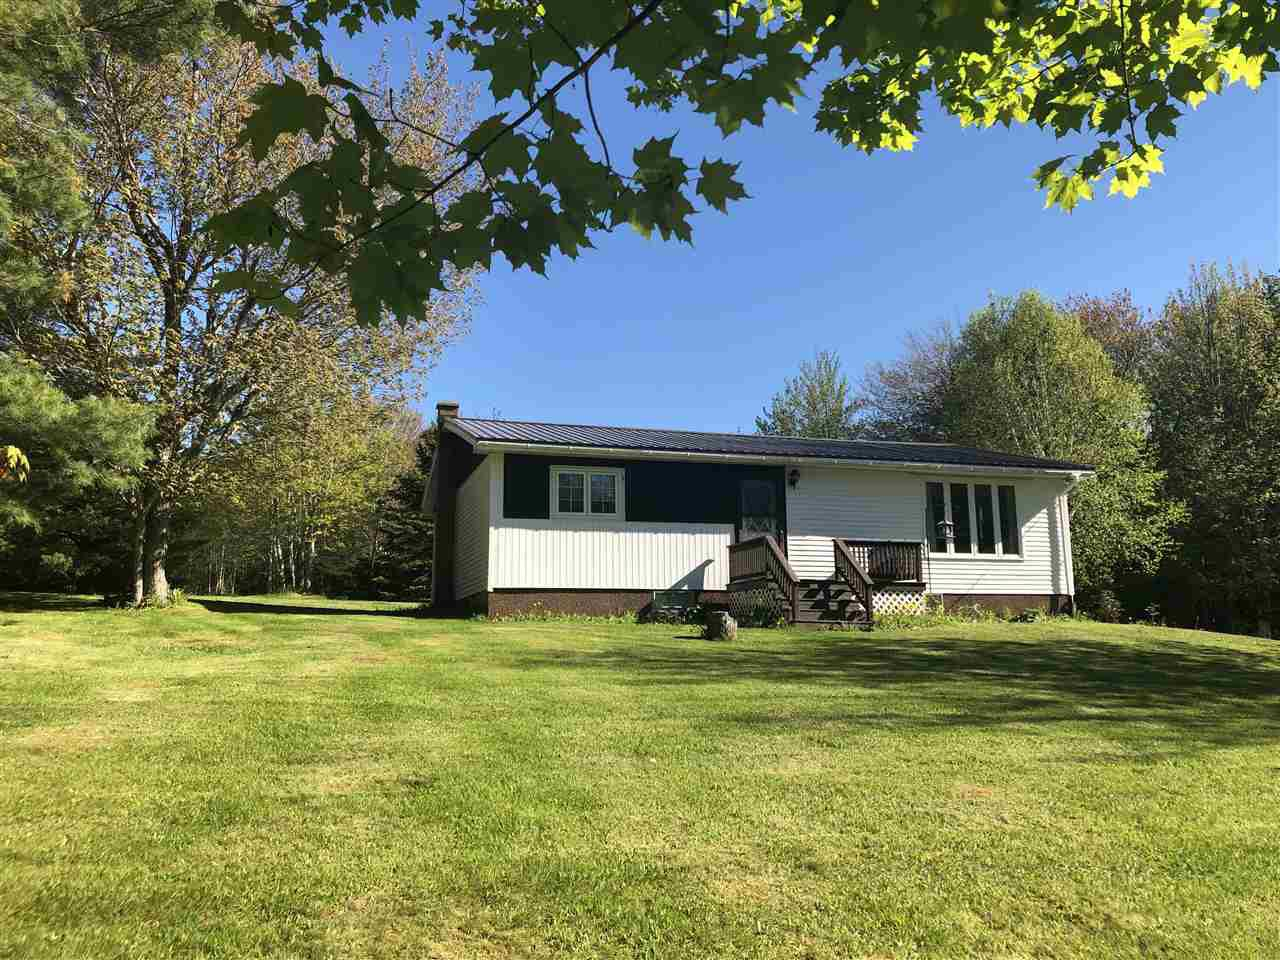 Main Photo: 2856 Scotsburn Road in Plainfield: 108-Rural Pictou County Residential for sale (Northern Region)  : MLS®# 202000814